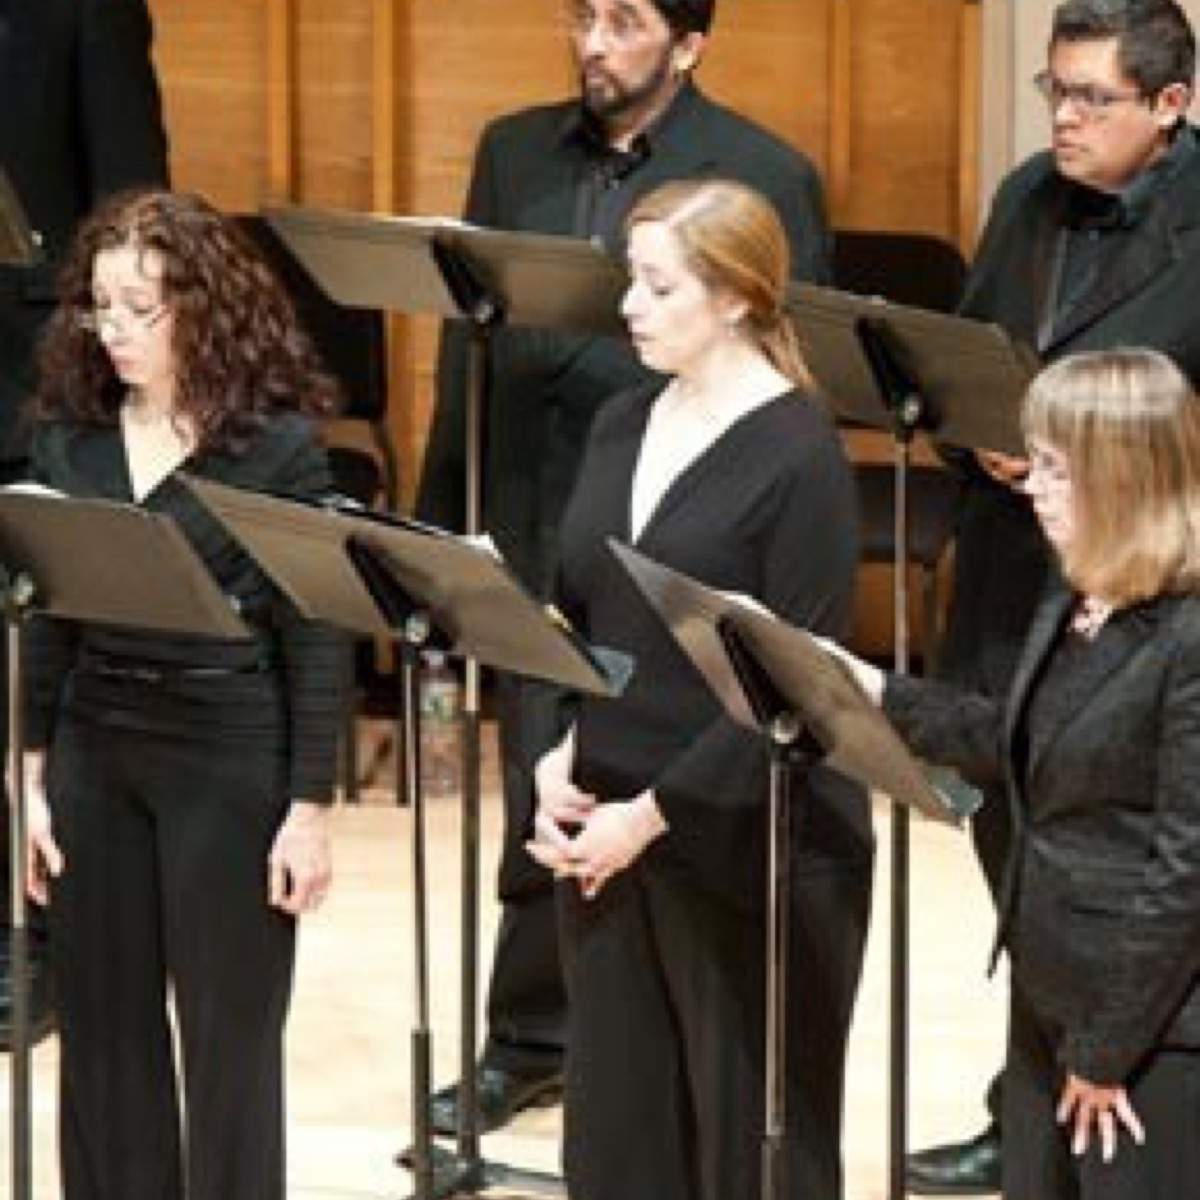 New-York-Virtuoso-Singers-Merkin-Concert-Hall-2